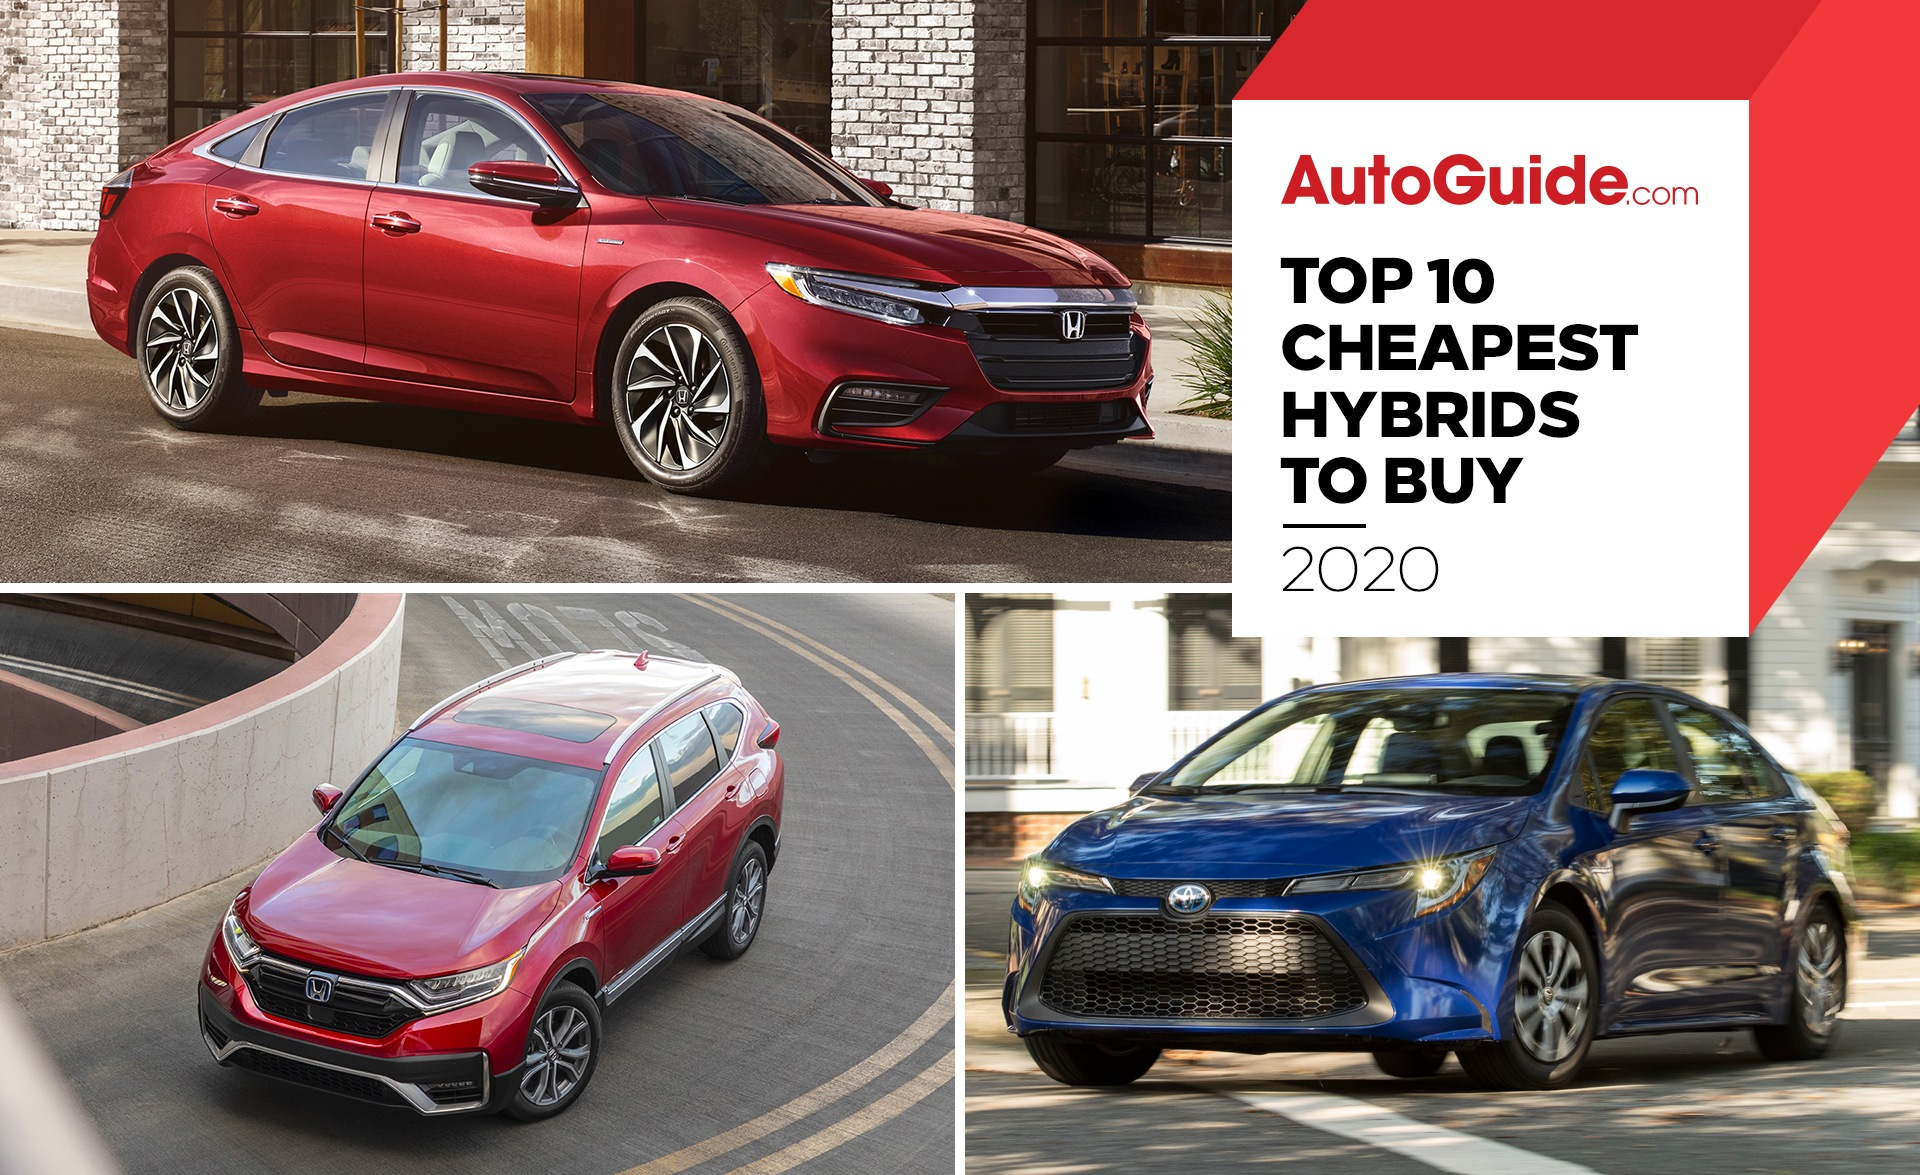 Top 10 Cheapest Hybrids to Buy 2020